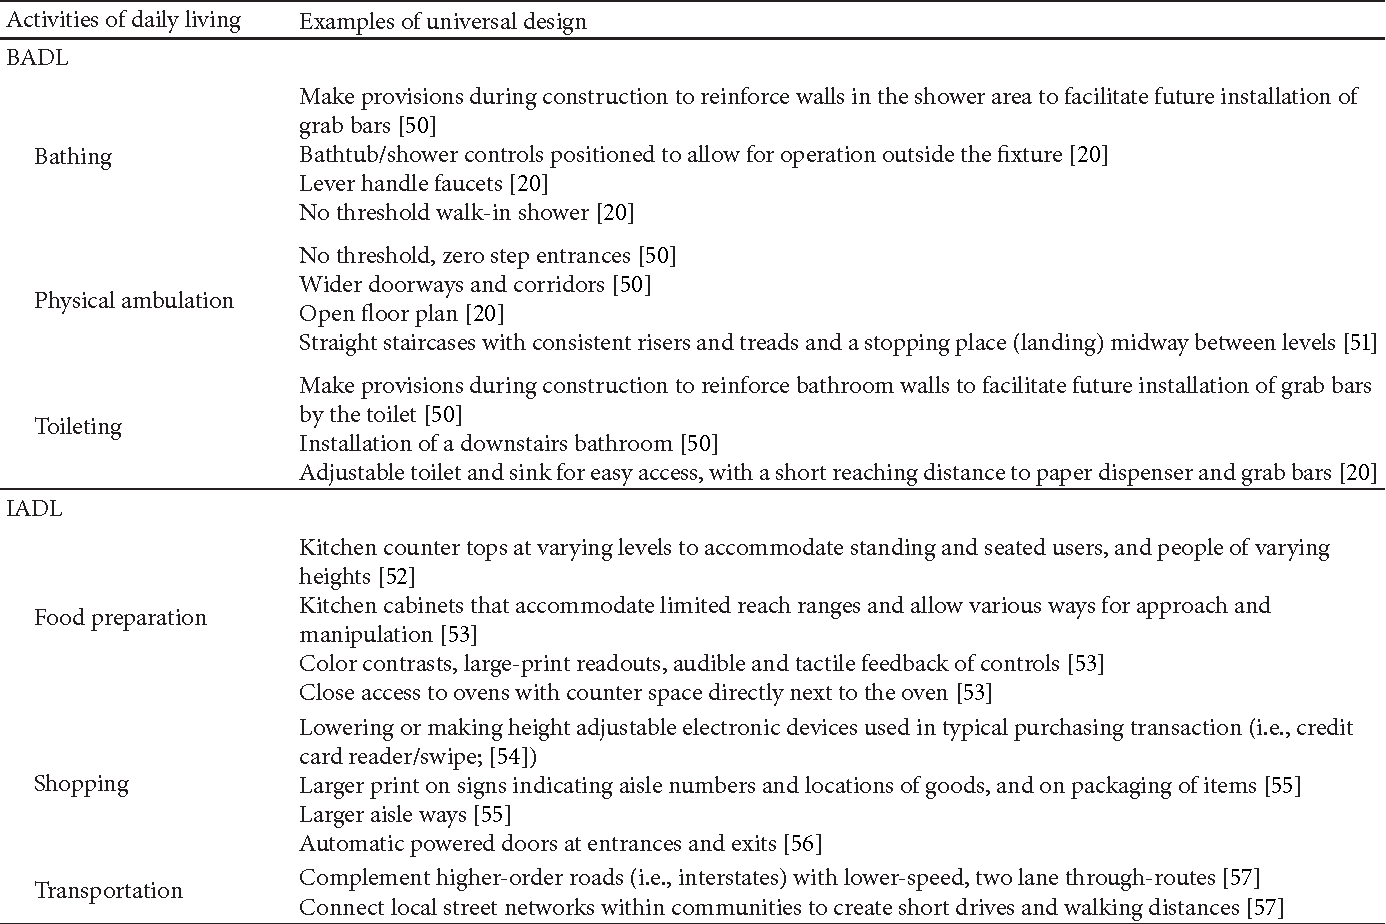 Table 3 from Universal Design: A Step toward Successful